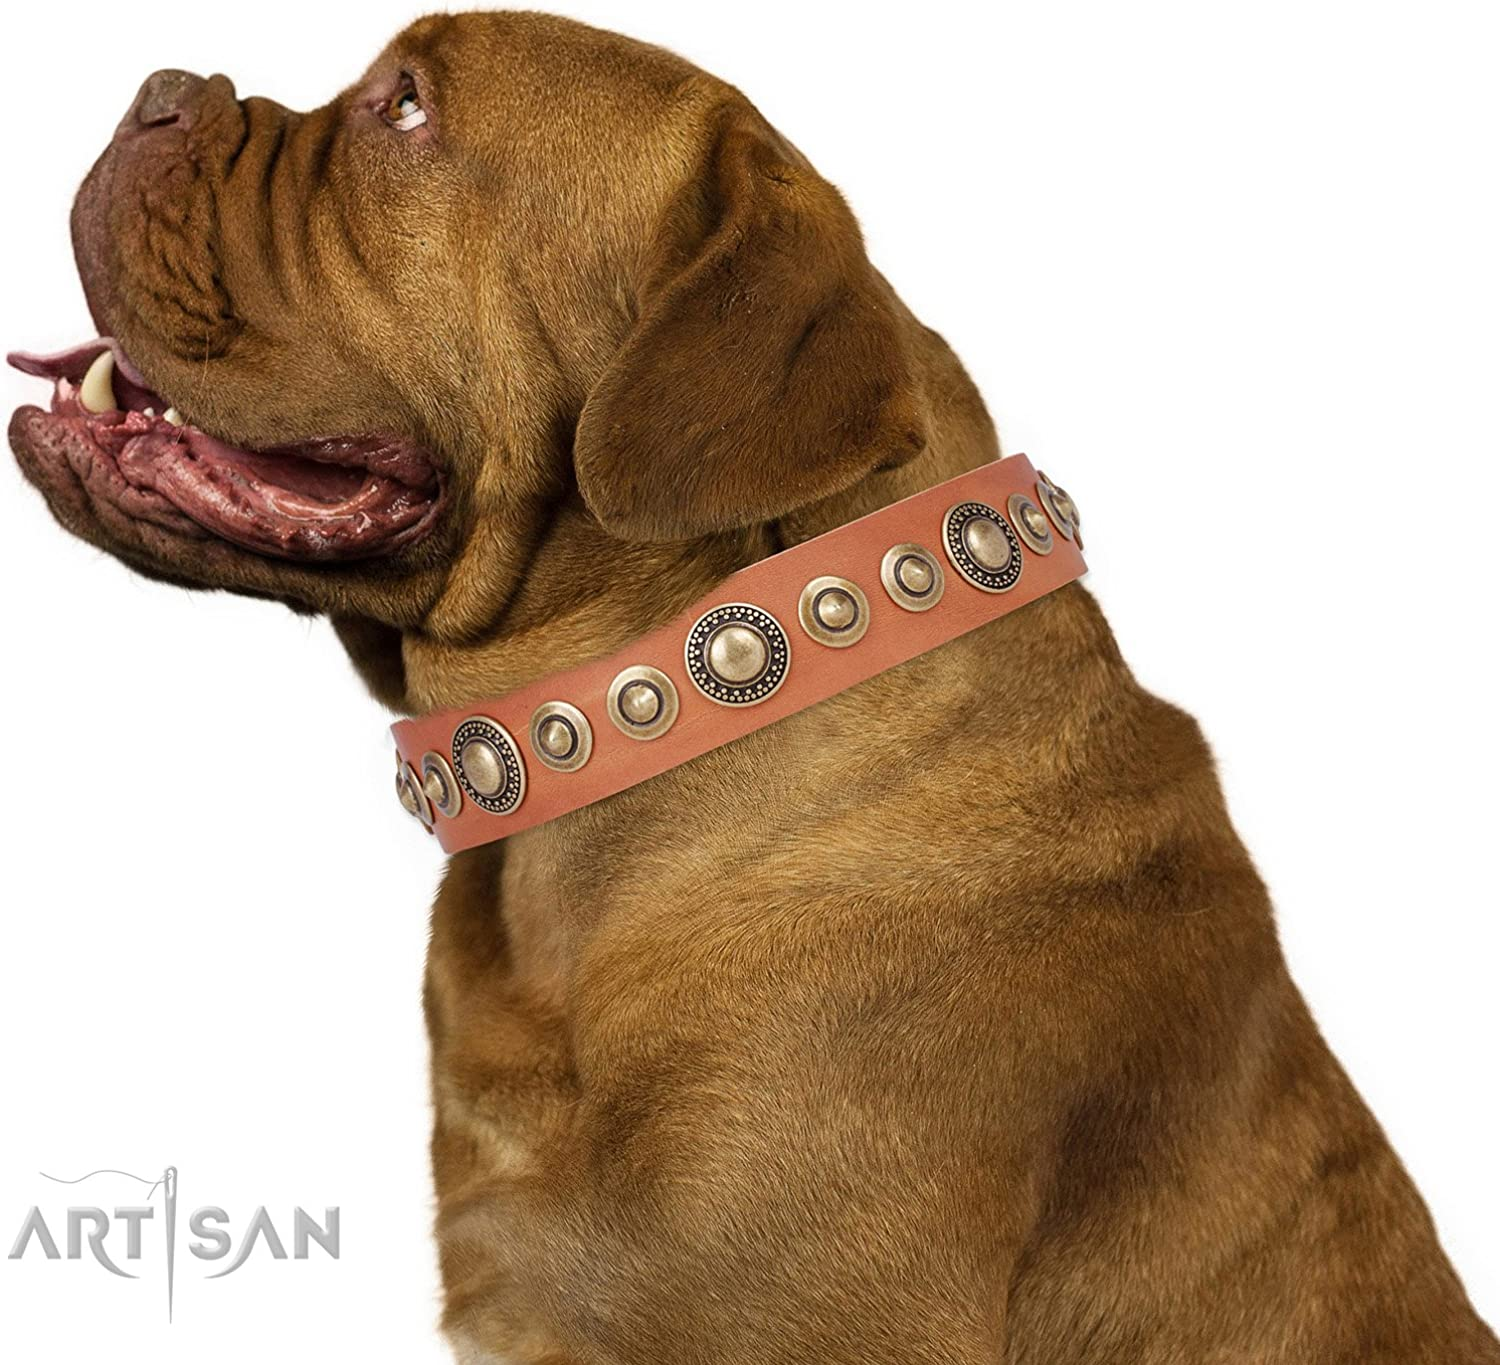 FDT Artisan 16 inch Tan Leather Dog Collar with Brass Plated Decorations Feast of Luxury  1 1 2 inch (40 mm) Wide